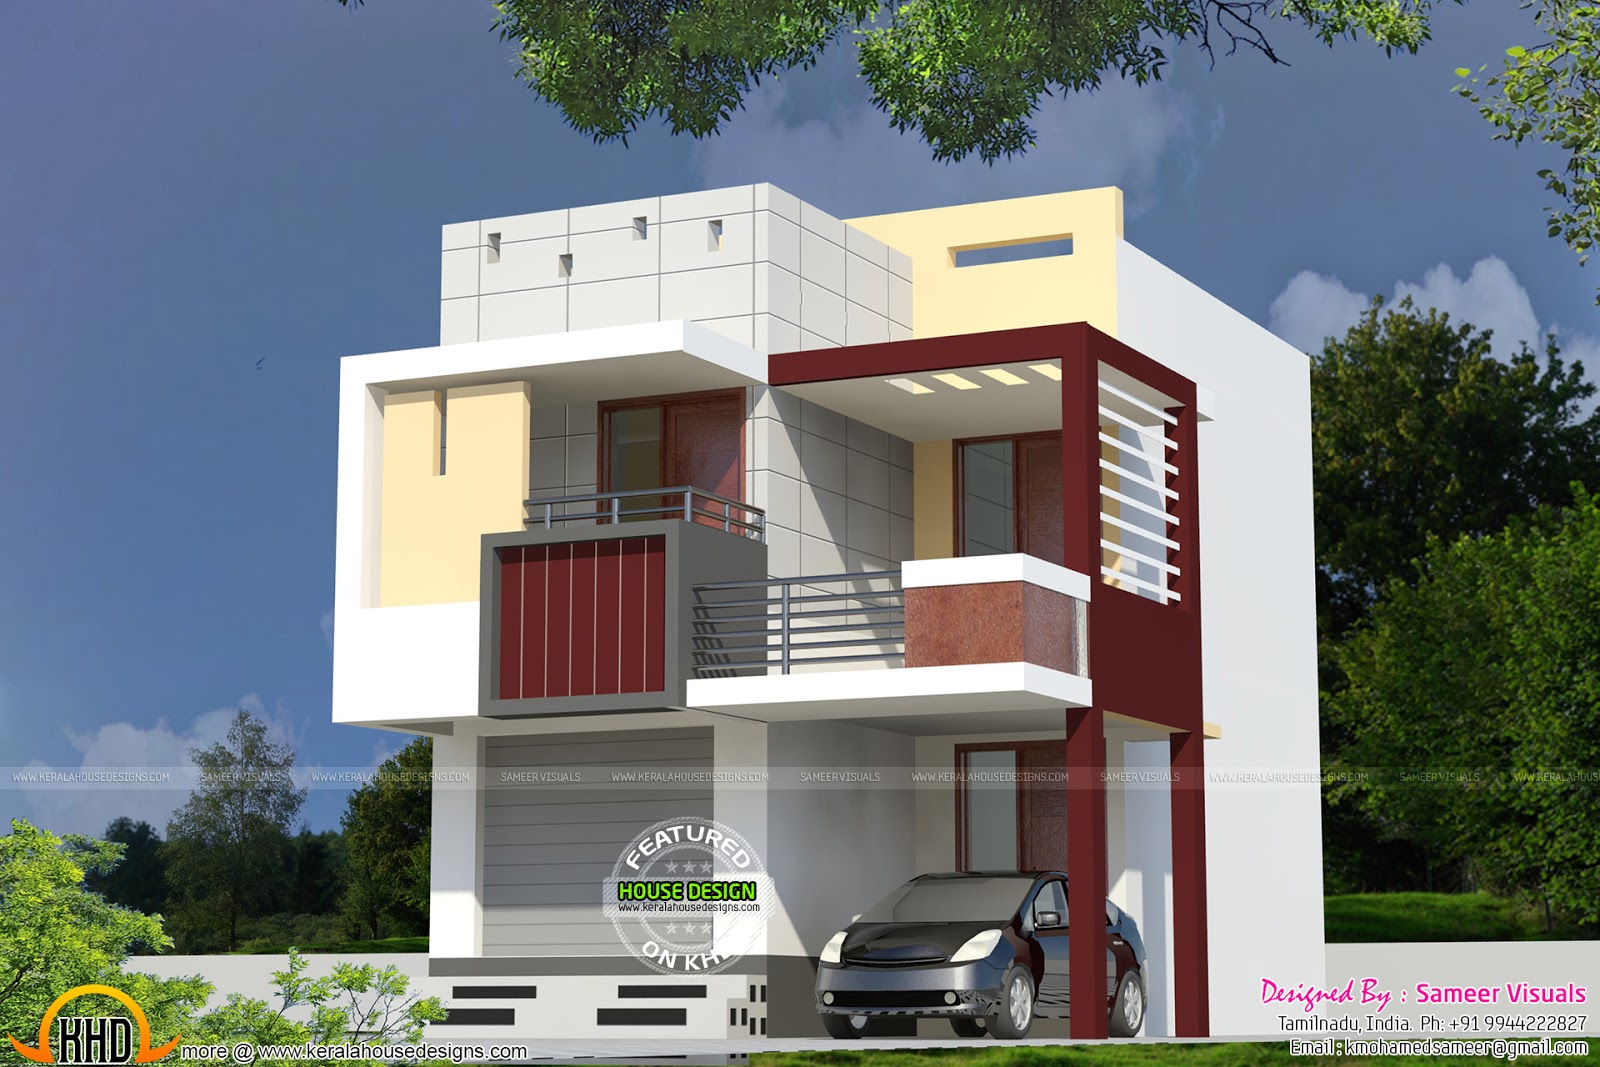 Very small double storied house kerala home design and for Kerala home designs photos in double floor